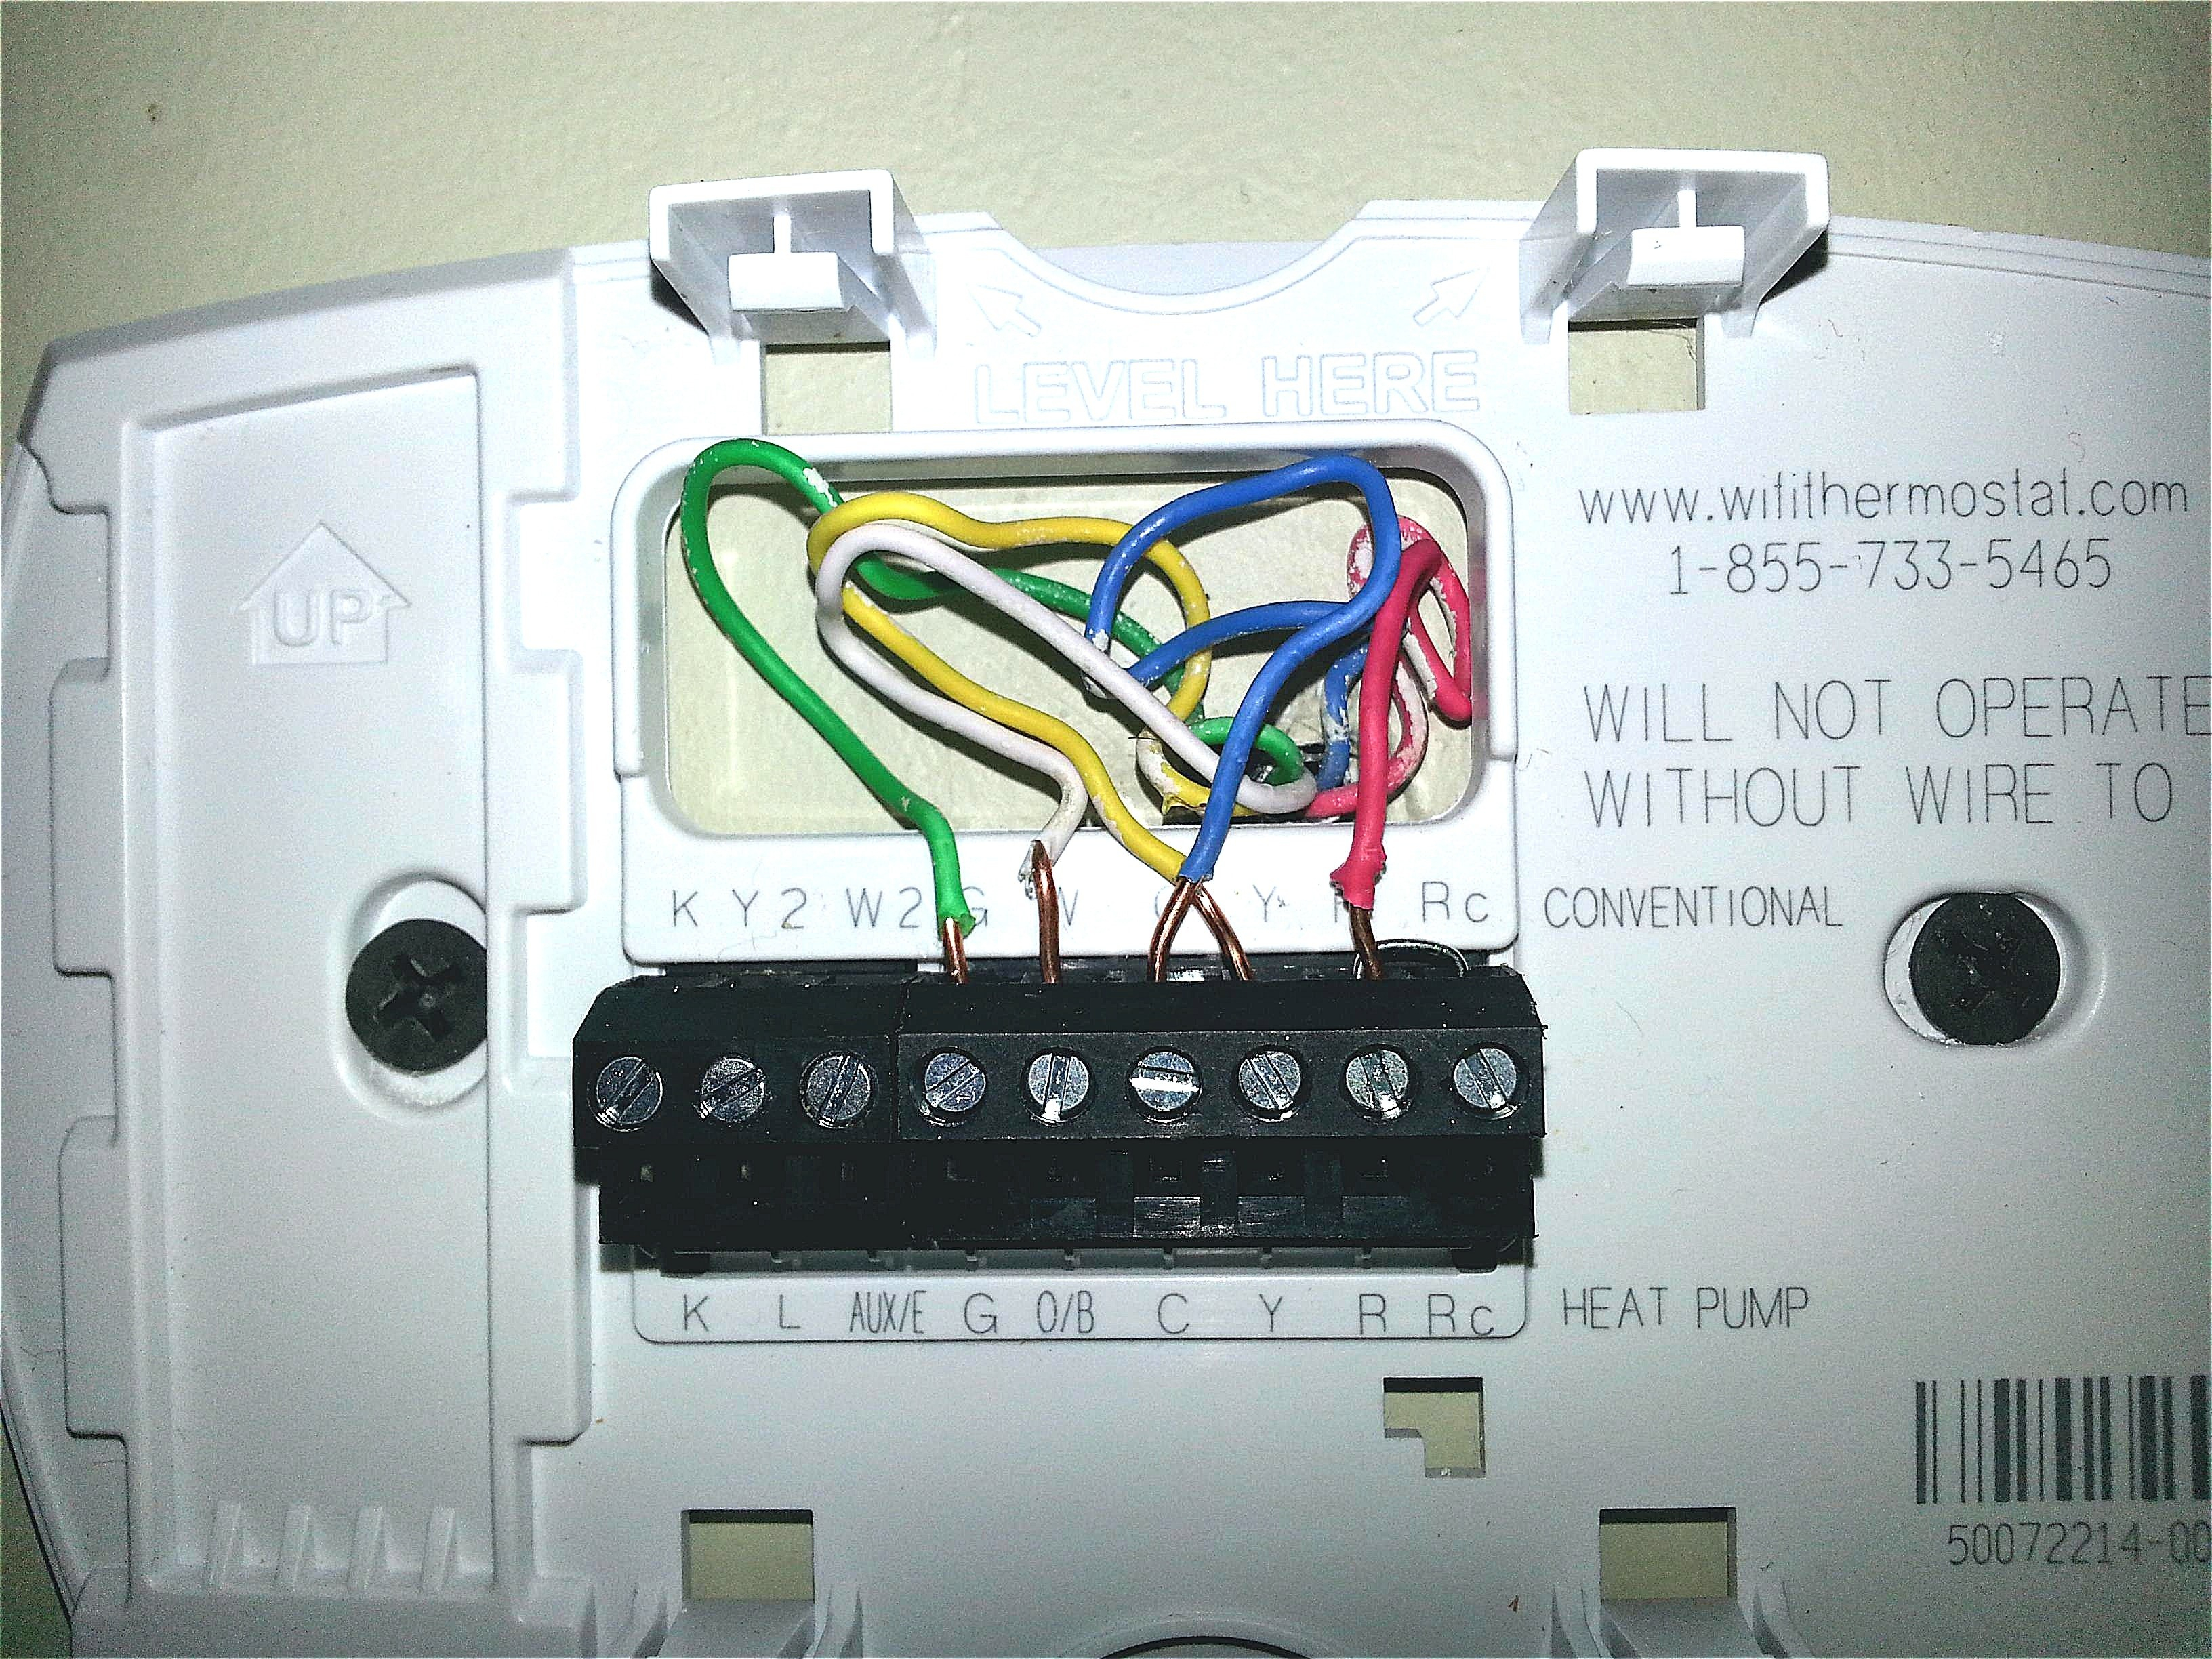 honeywell heat pump thermostat wiring diagram Download-Wifi wiring diagram honeywell heat pump thermostat marvelous design on satellite for publish see also gallery 17-r